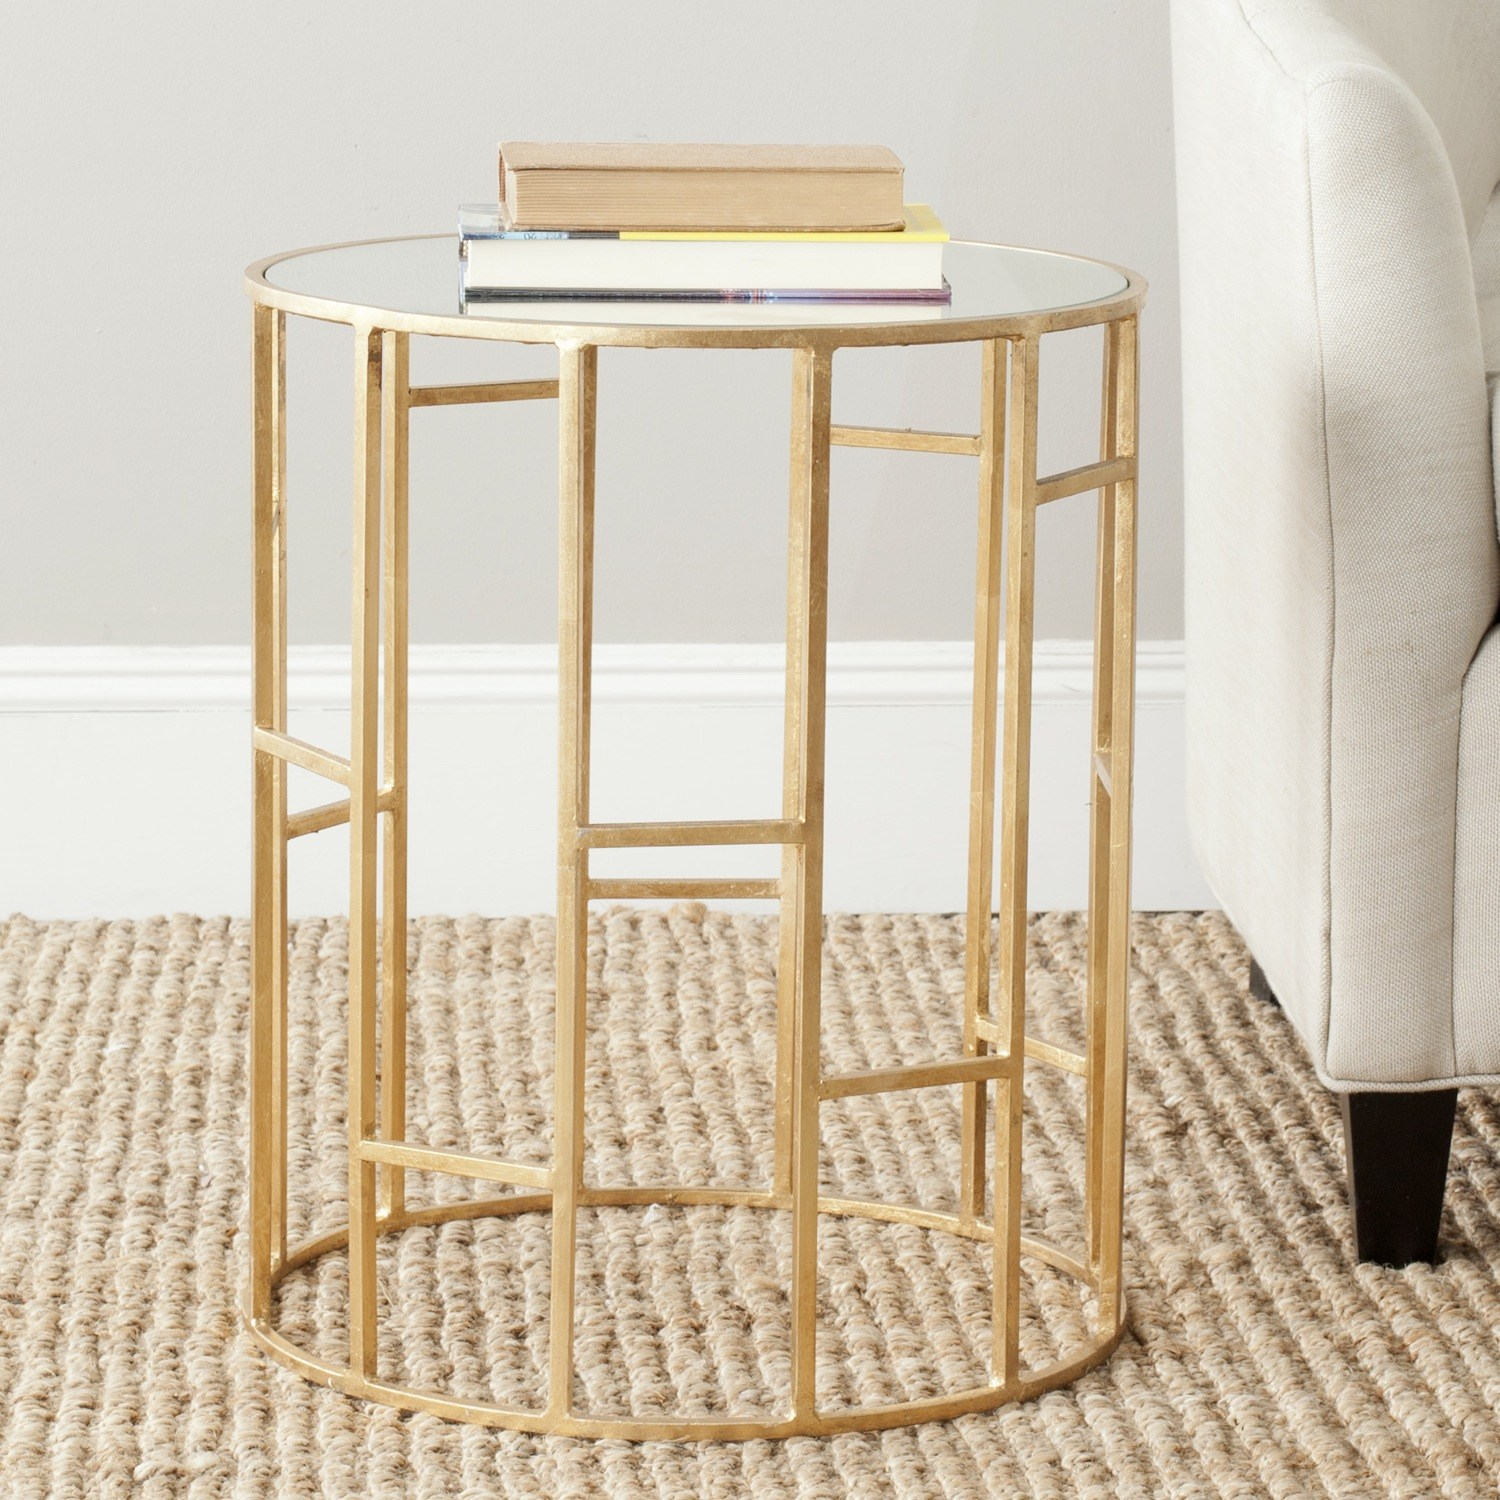 safavieh treasures doreen gold mirror top accent table free and farmhouse coffee decor grey wood nest tables man cave furniture marble dining designs battery powered bedroom lamps